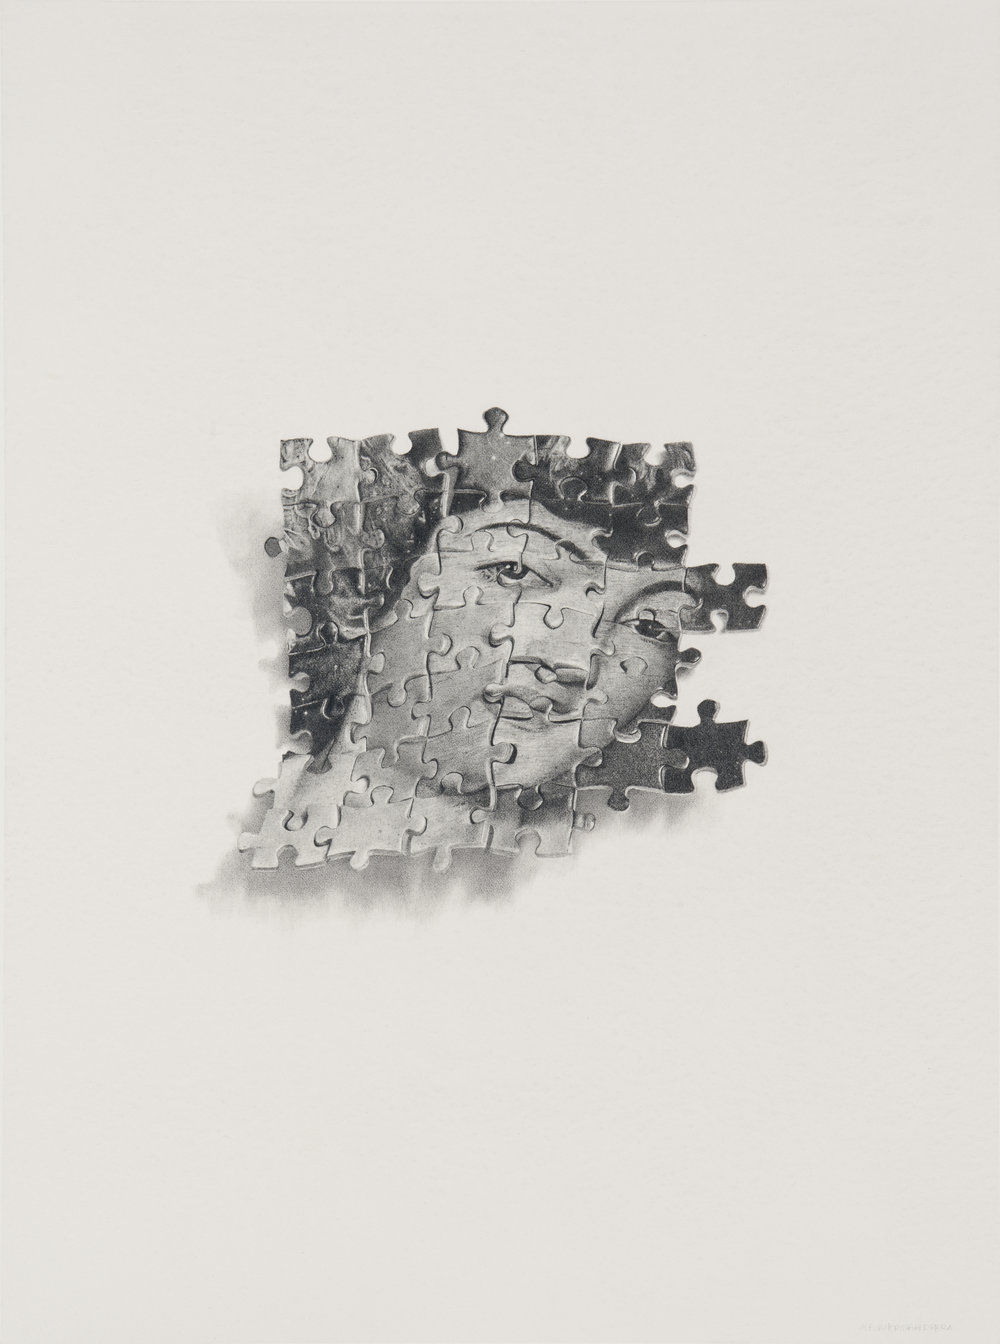 Kinds of Puzzles No. 1_Pencil on paper_24x18_1600.jpg